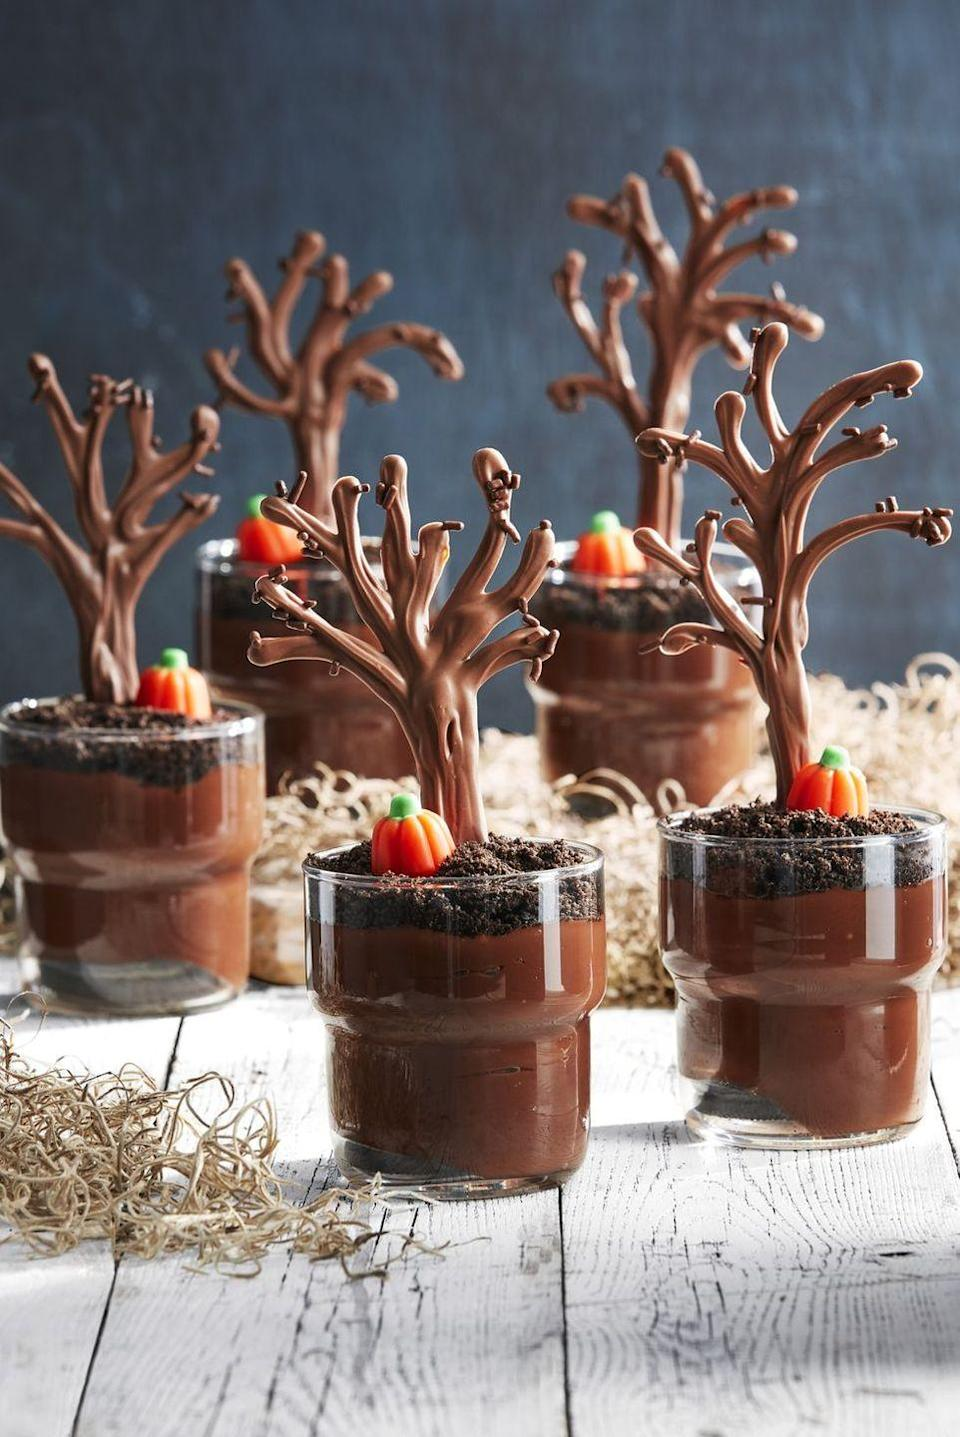 """<p>Bet your guests won't be able to get enough of these sweet treats! """"Spooky"""" chocolate trees meet crushed sandwich cookies and candy pumpkins in this fun Halloween dessert. </p><p><strong><a href=""""https://www.countryliving.com/food-drinks/a28943384/spooky-forest-pudding-cups/"""" rel=""""nofollow noopener"""" target=""""_blank"""" data-ylk=""""slk:Get the recipe"""" class=""""link rapid-noclick-resp"""">Get the recipe</a>.</strong> </p>"""